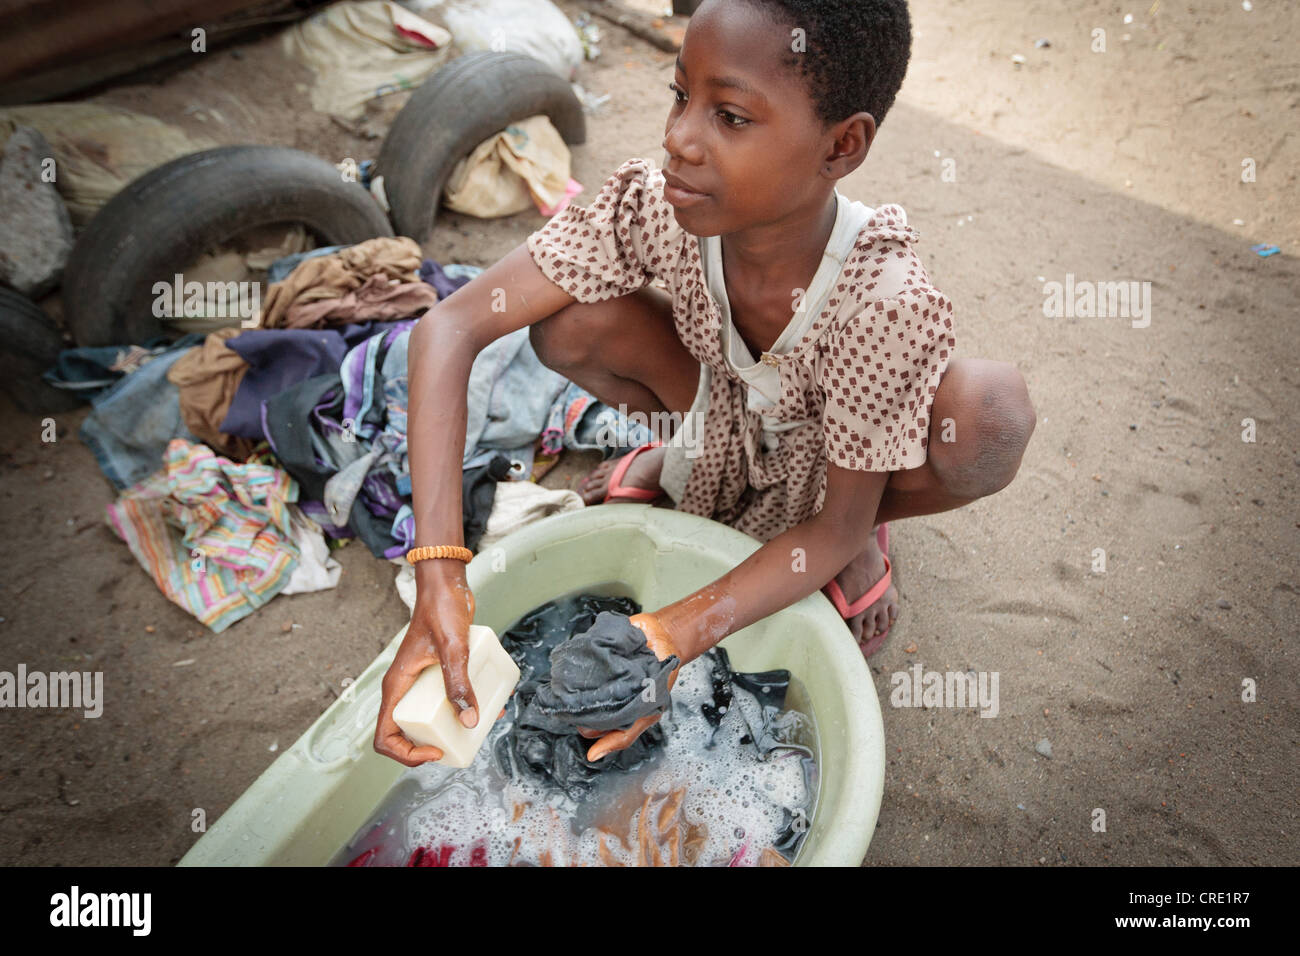 A girl hand washes clothes in the Point Four neighborhood of Monrovia, Montserrado county, Liberia on Thursday April - Stock Image